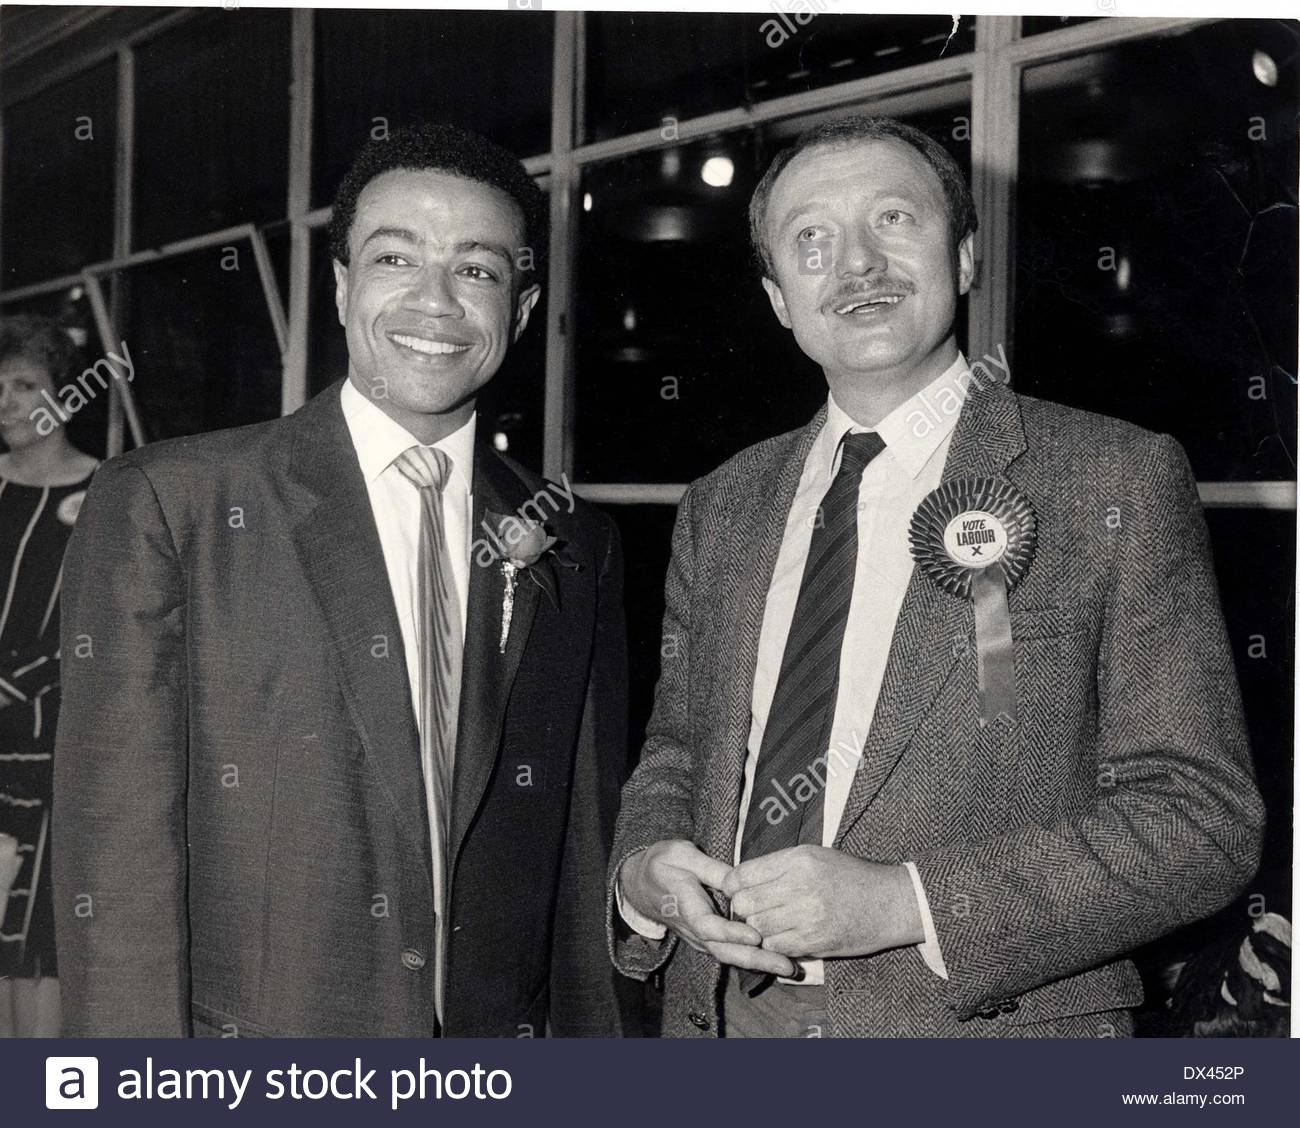 Ken Livingstone - Politician Paul Boateng (left) Stock Photo